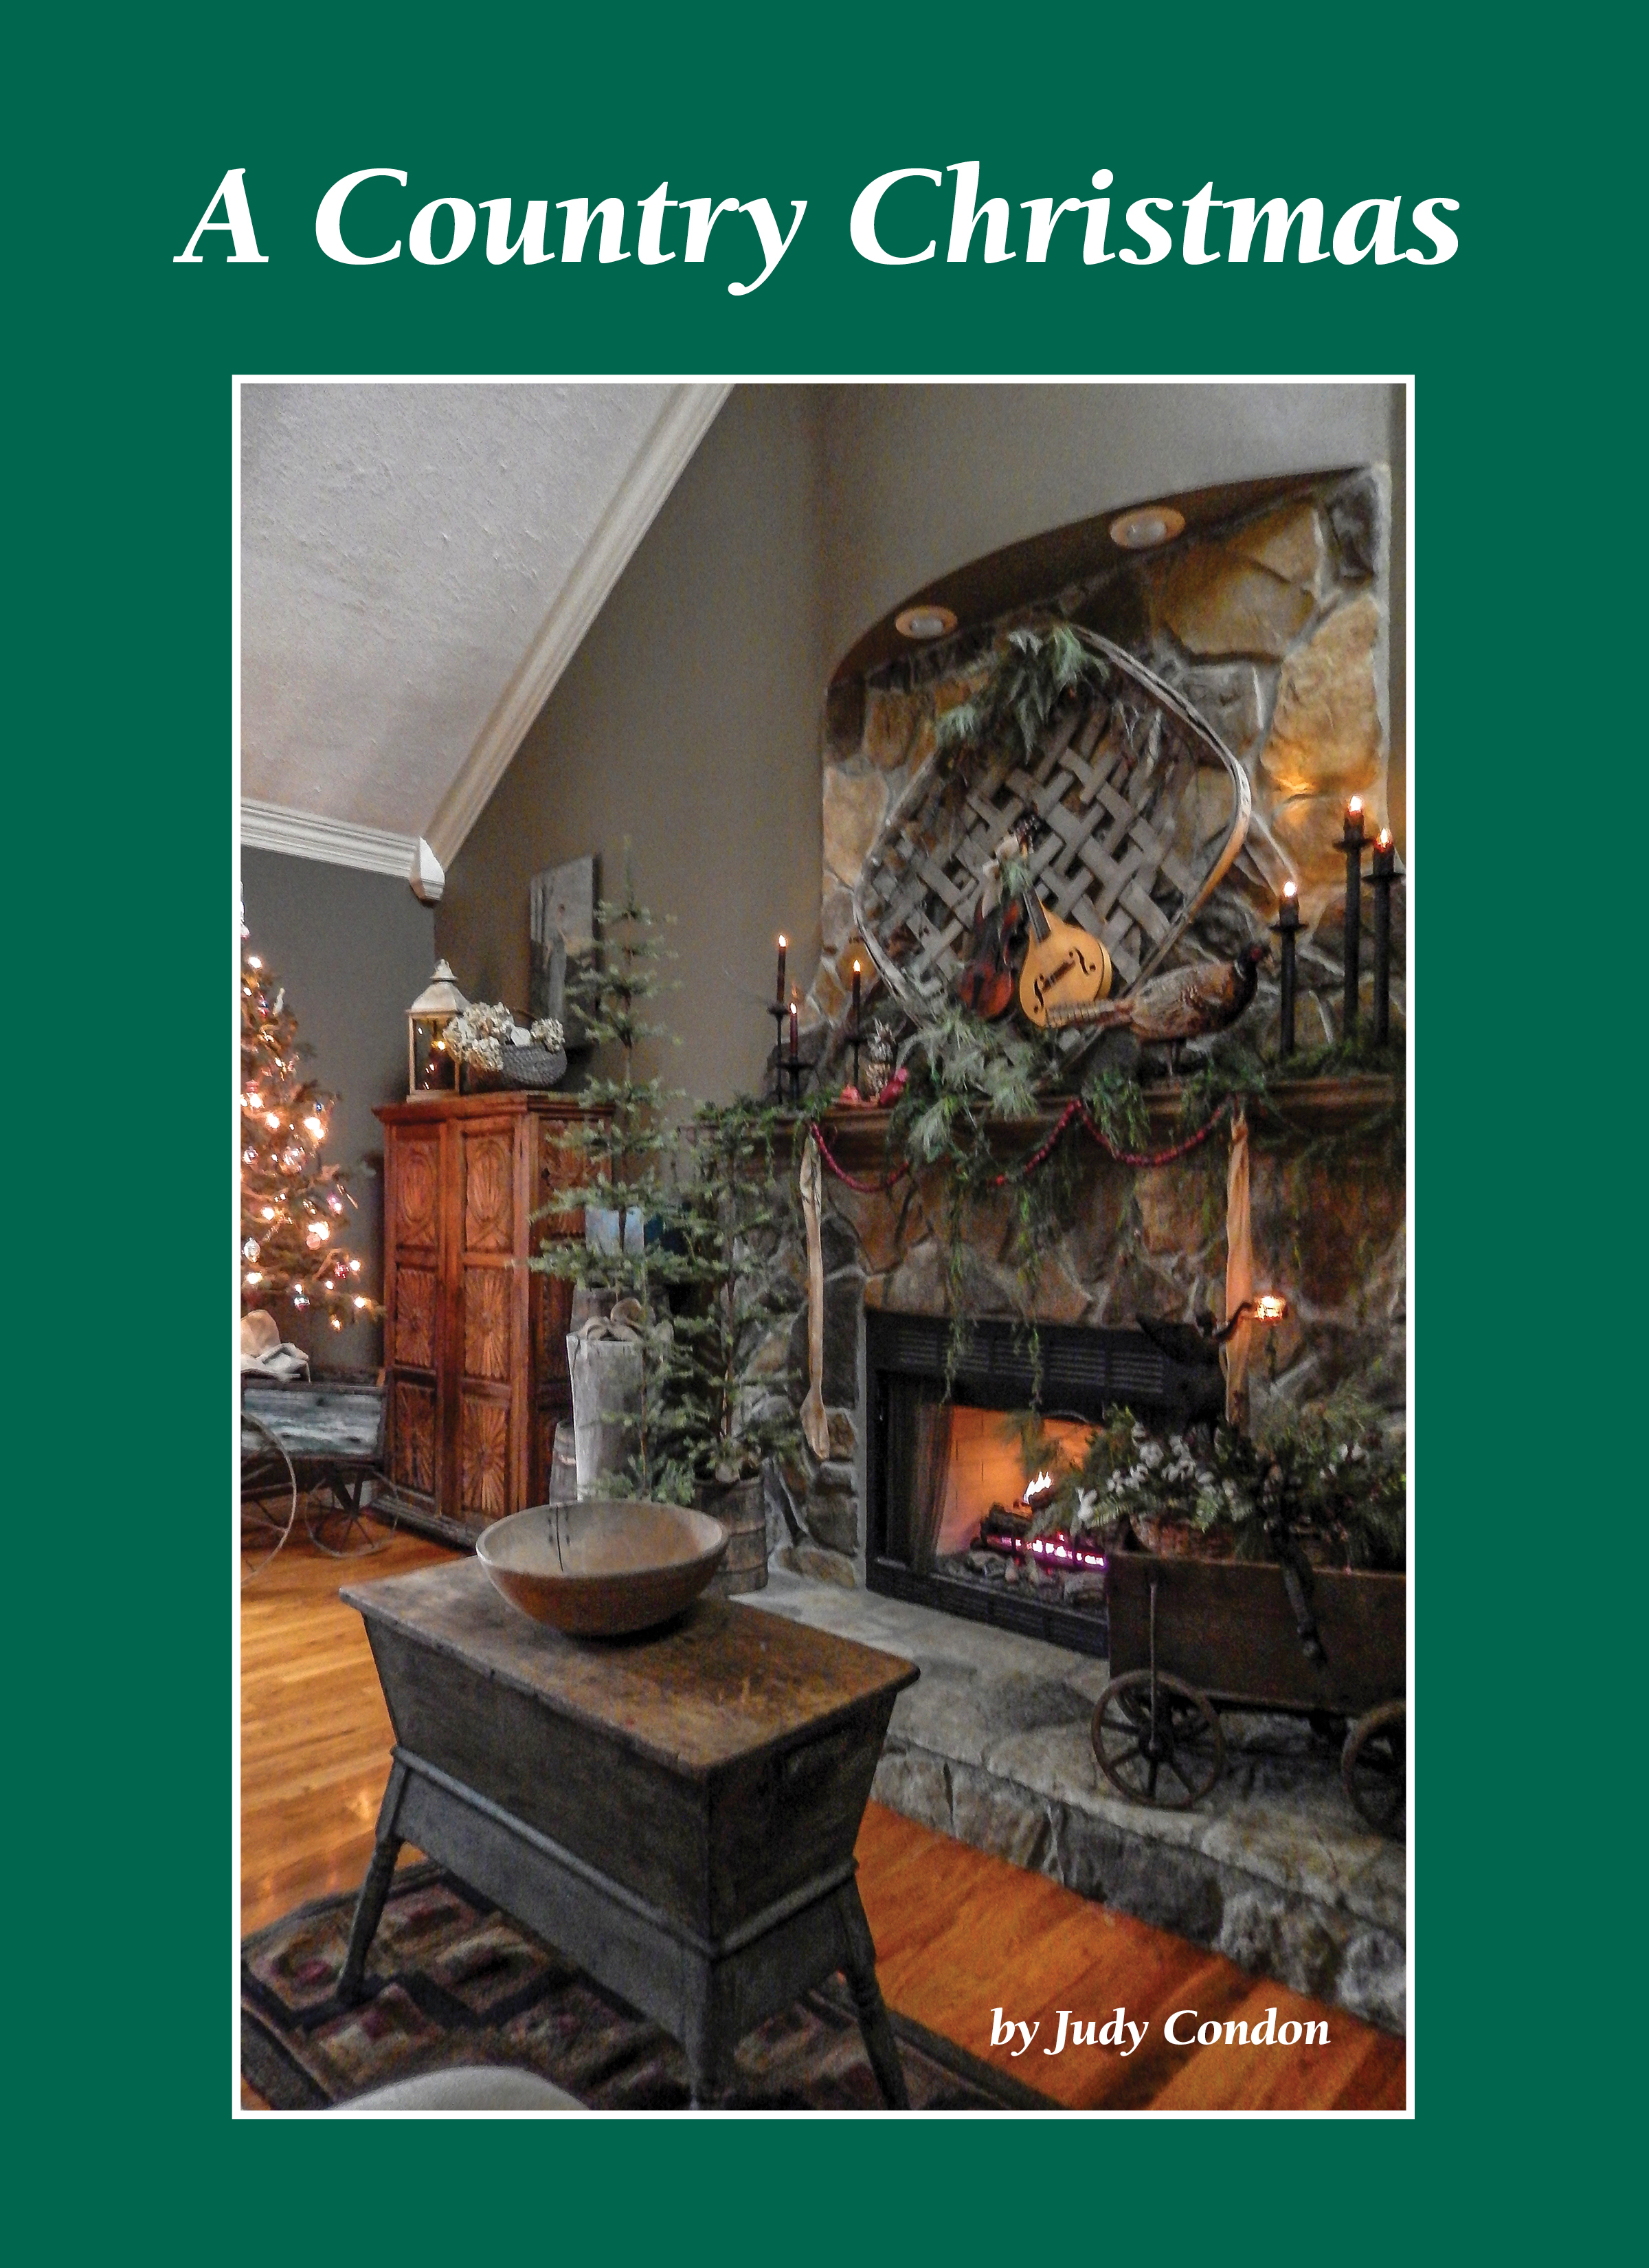 40 a country christmas - A Country Christmas